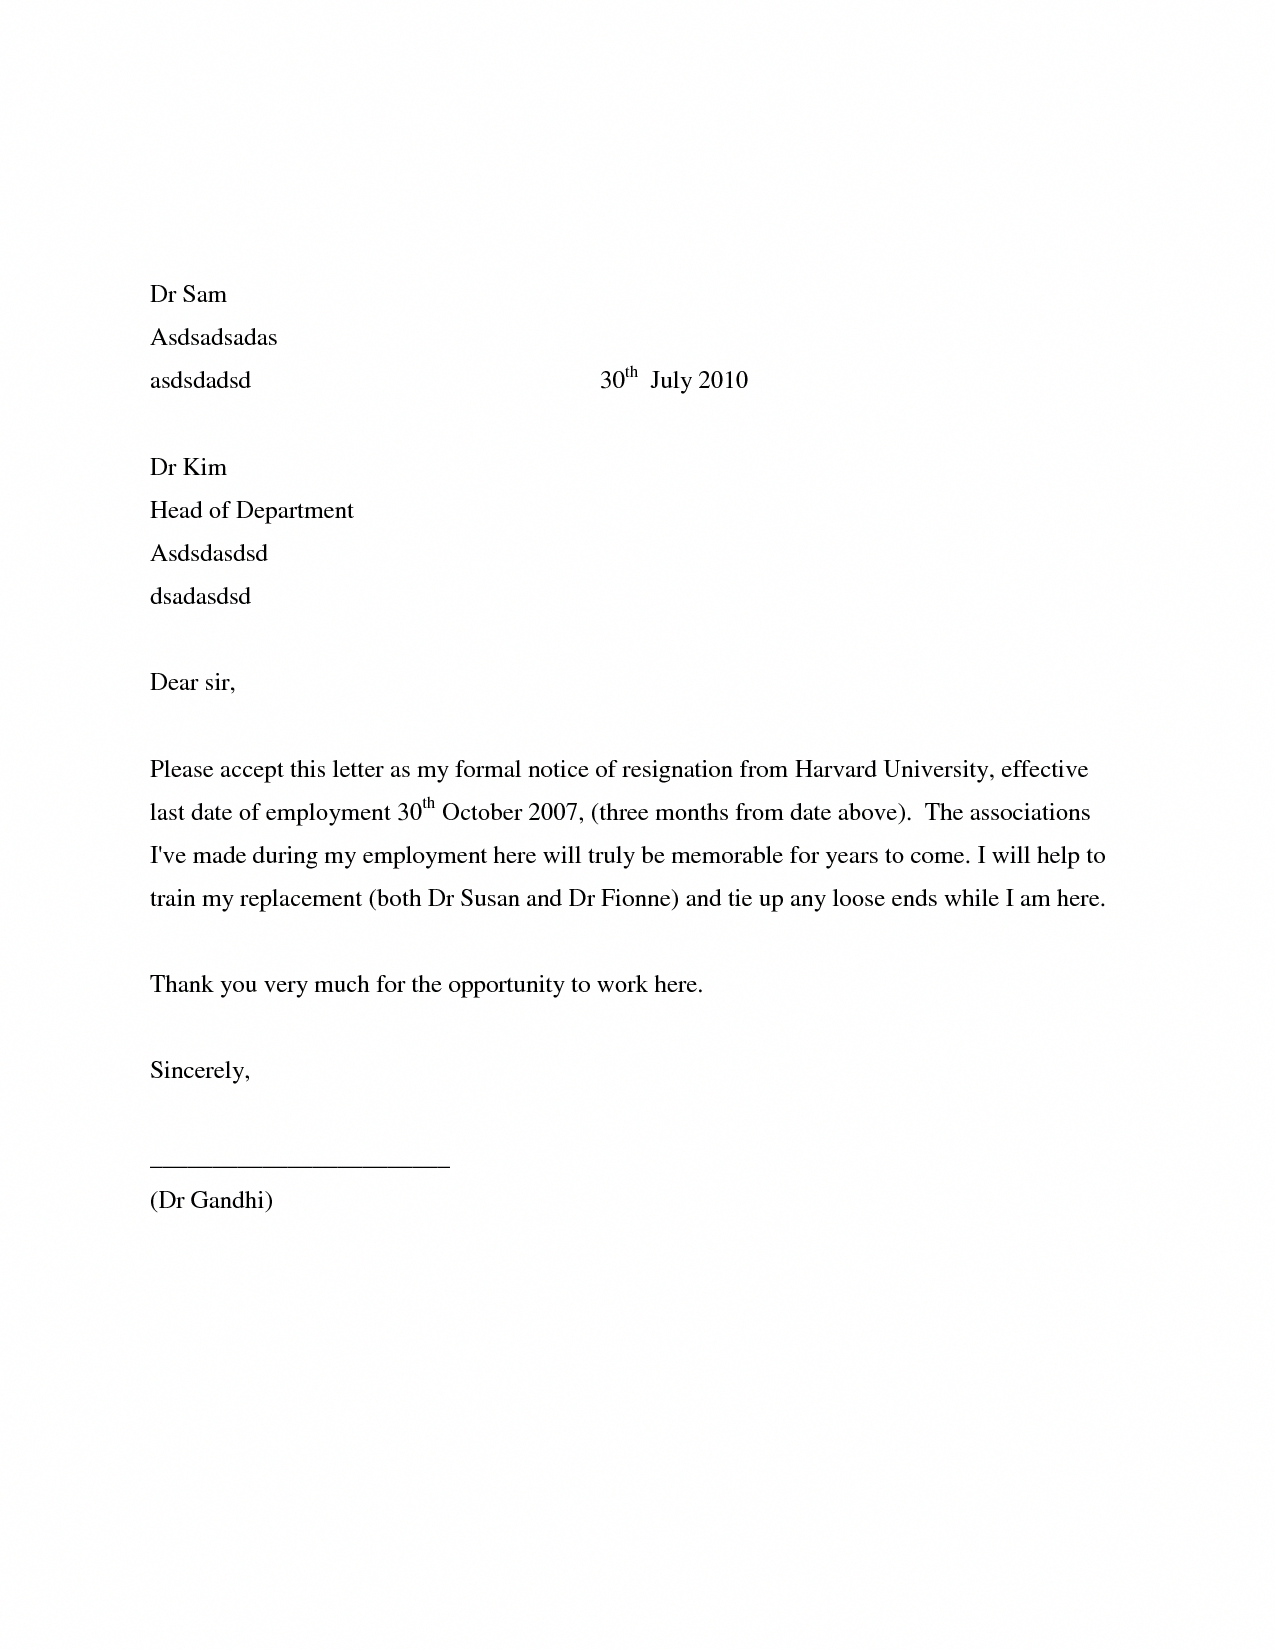 Simple Resignation Letters Examples SeeabruzzoWriting A